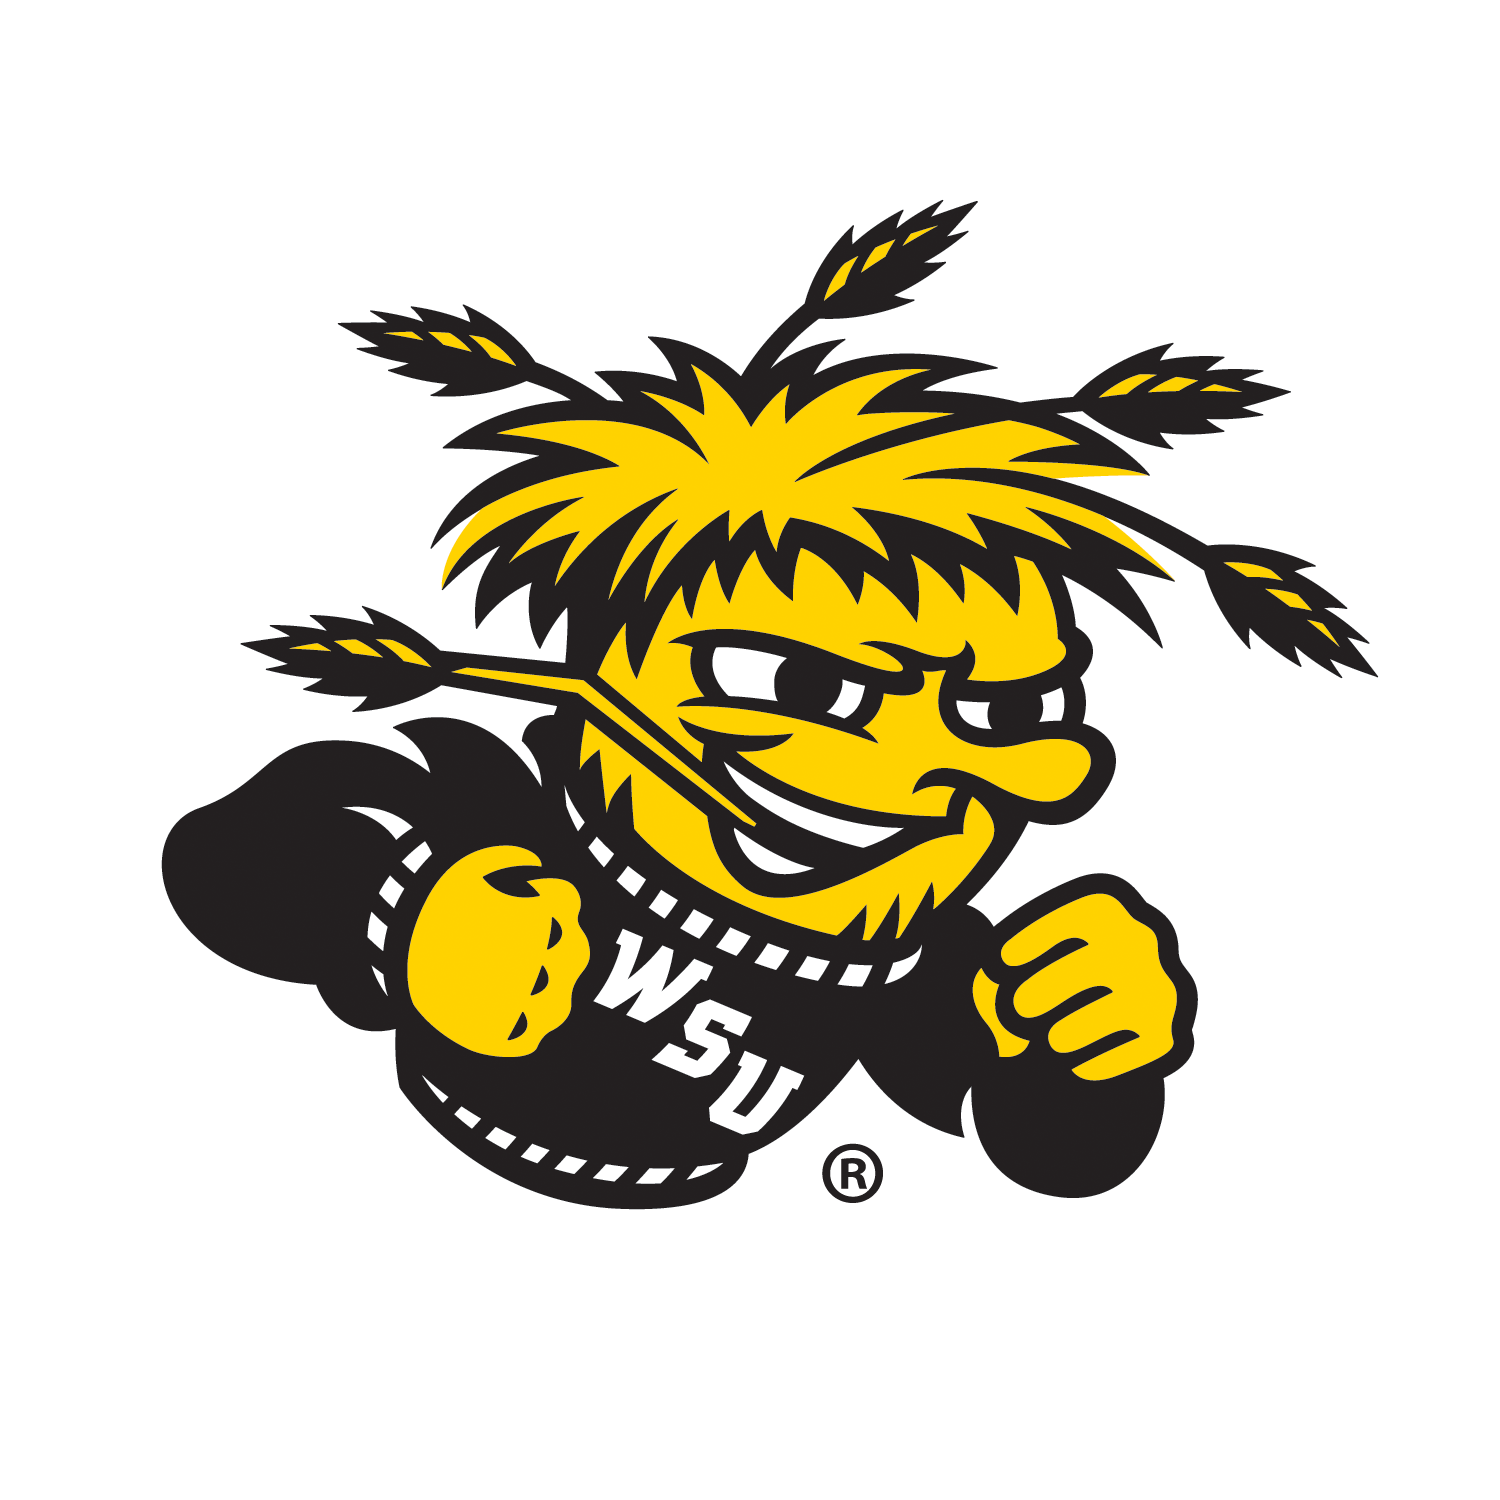 (Presenting) Wichita State Athletics